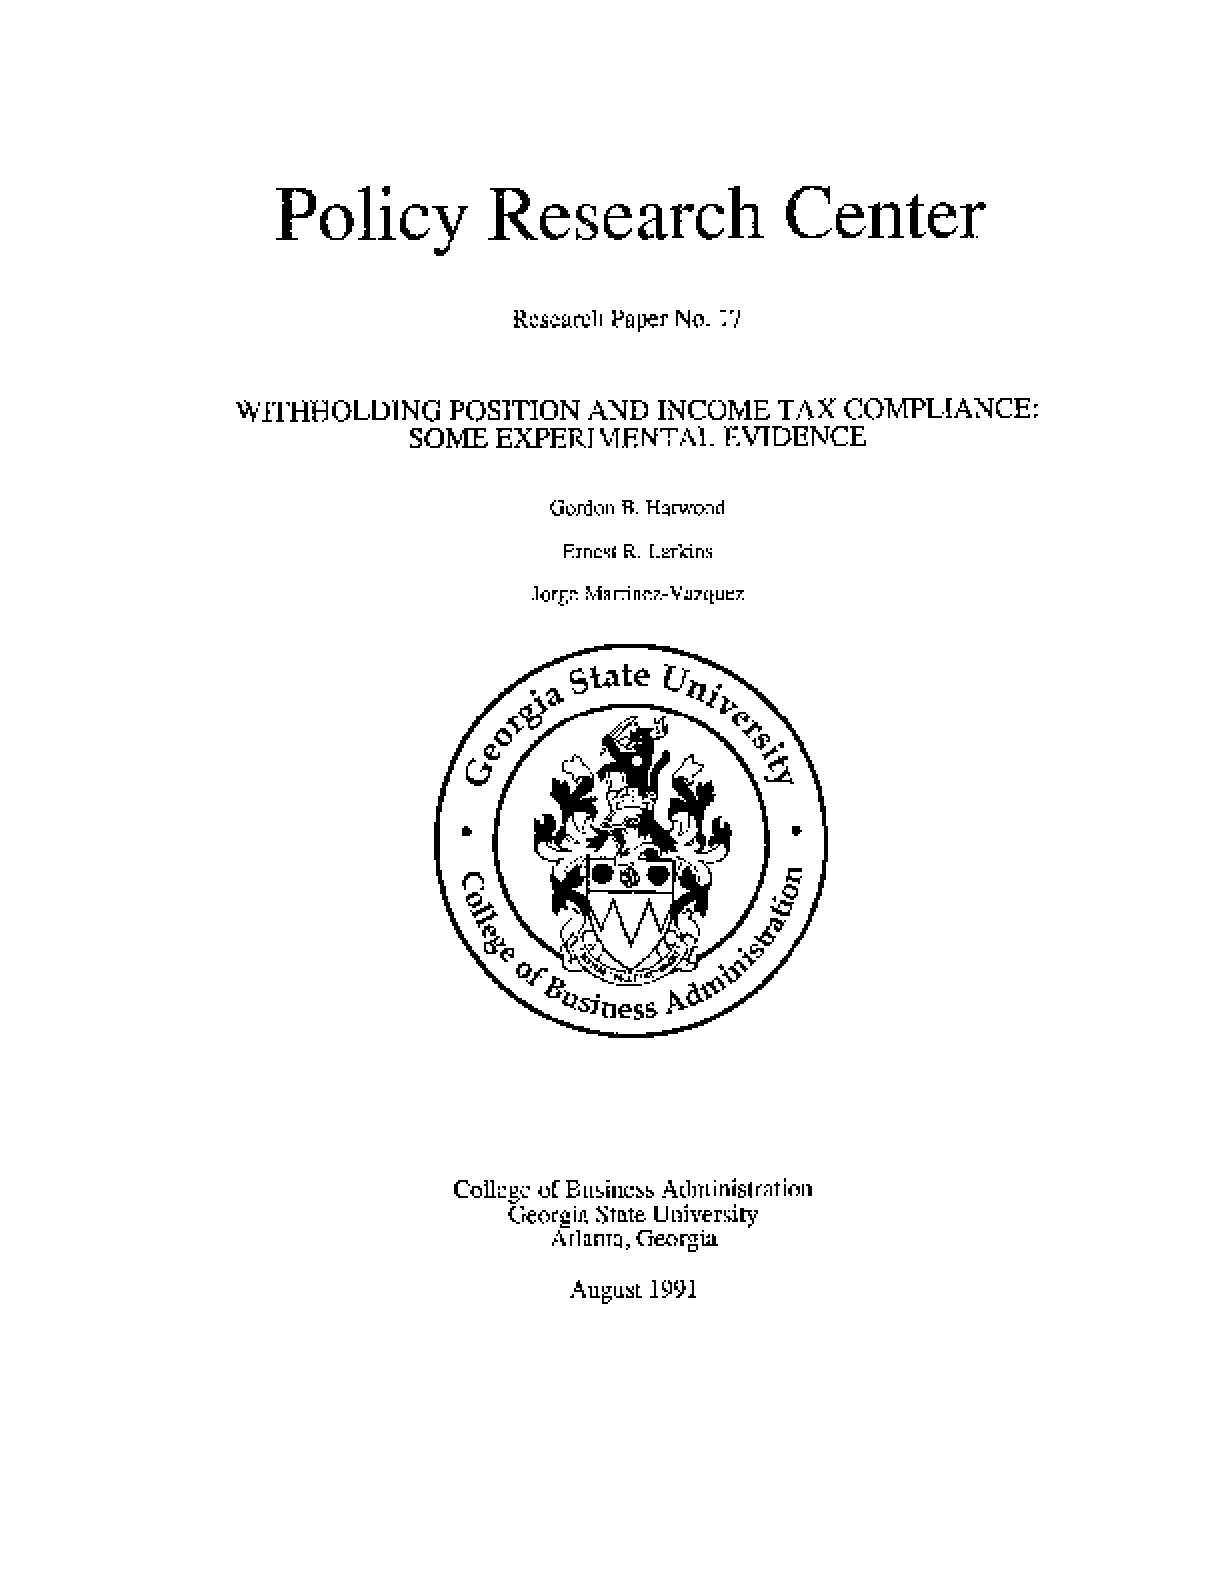 Withholding Position and Income Tax Compliance: Some Experimental Evidence